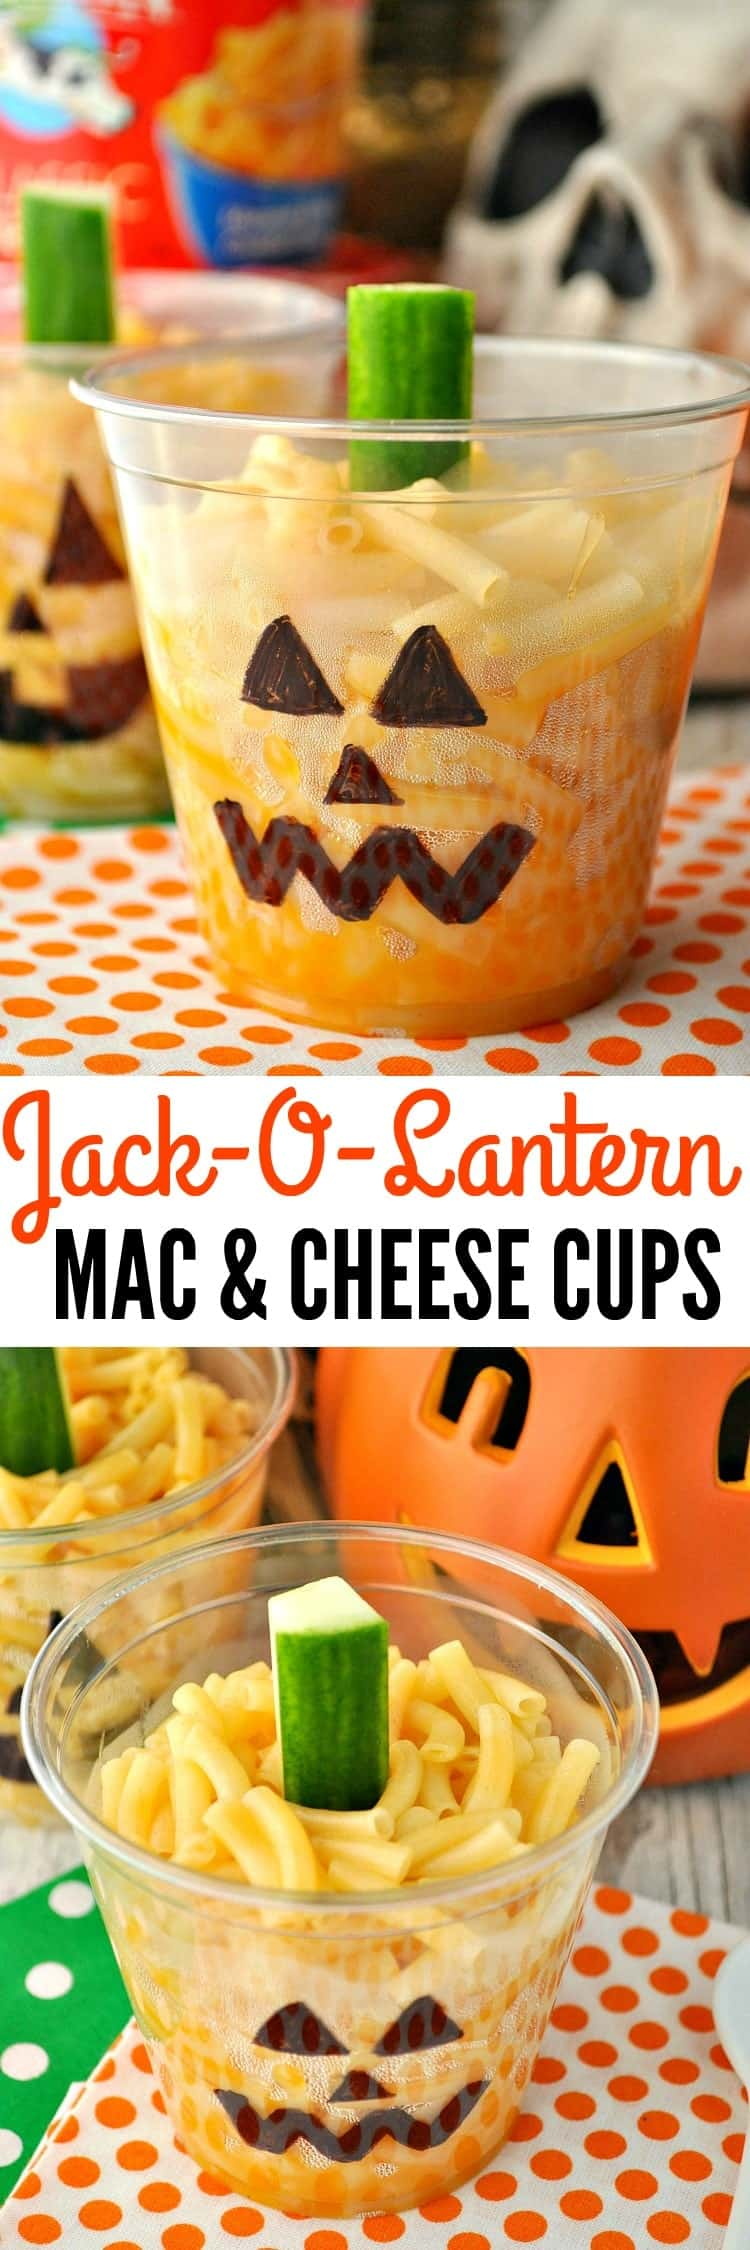 Halloween Dinner Party Menu Ideas Part - 18: Jack-O-Lantern Mac U0026 Cheese Cups Are A Fun And Easy Halloween Lunch